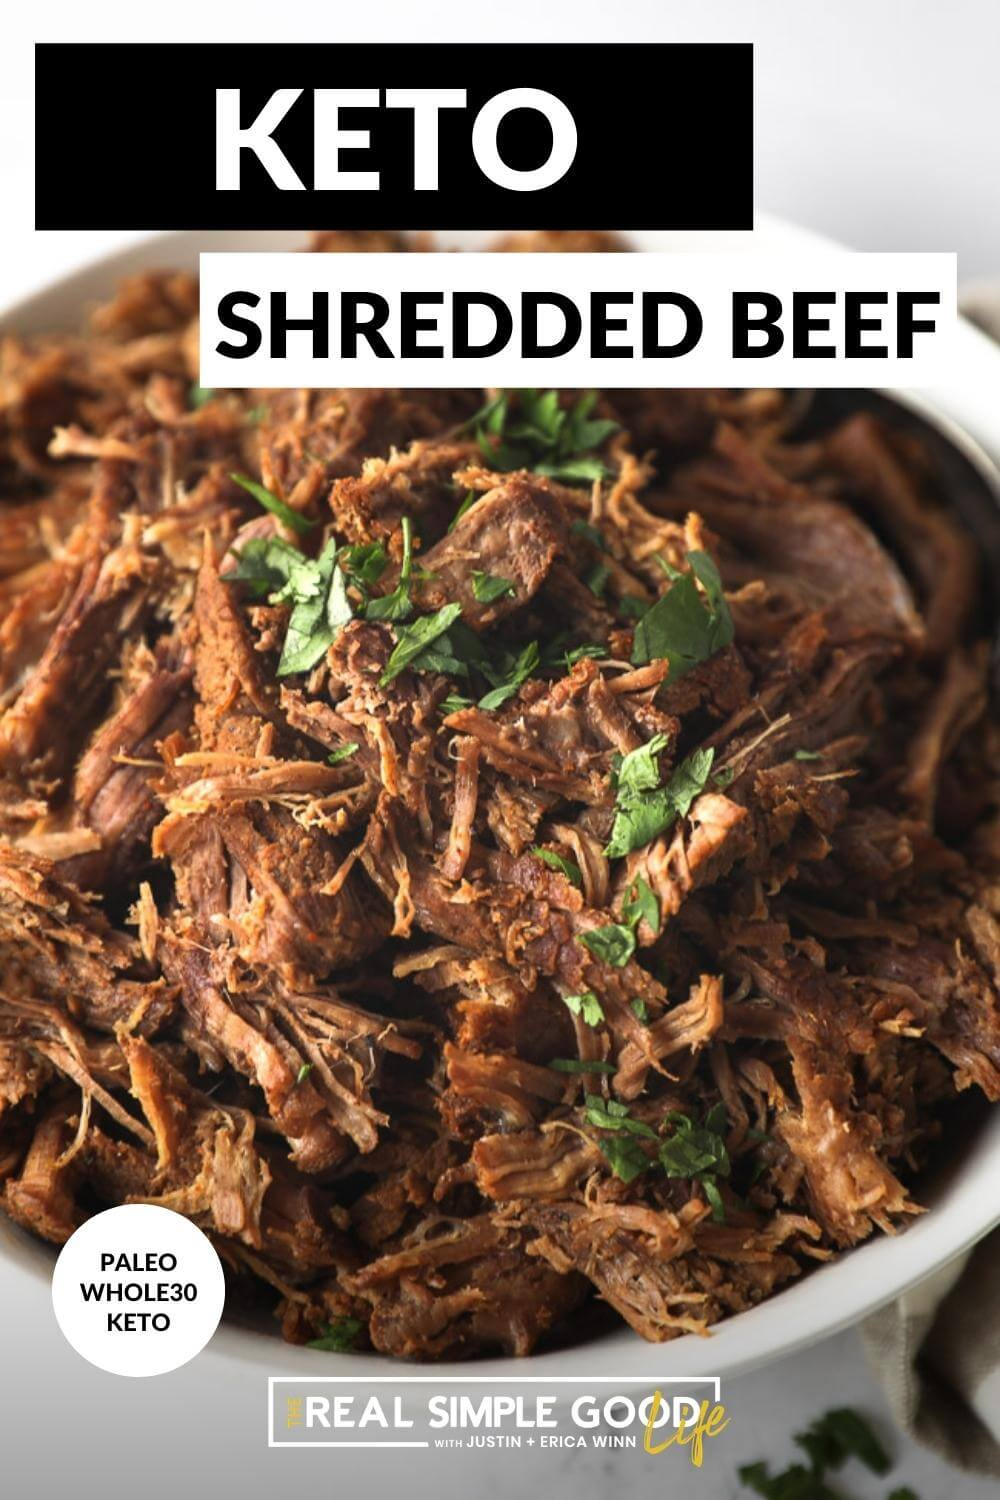 Close up image of shredded beef in a bowl with text overlay at top